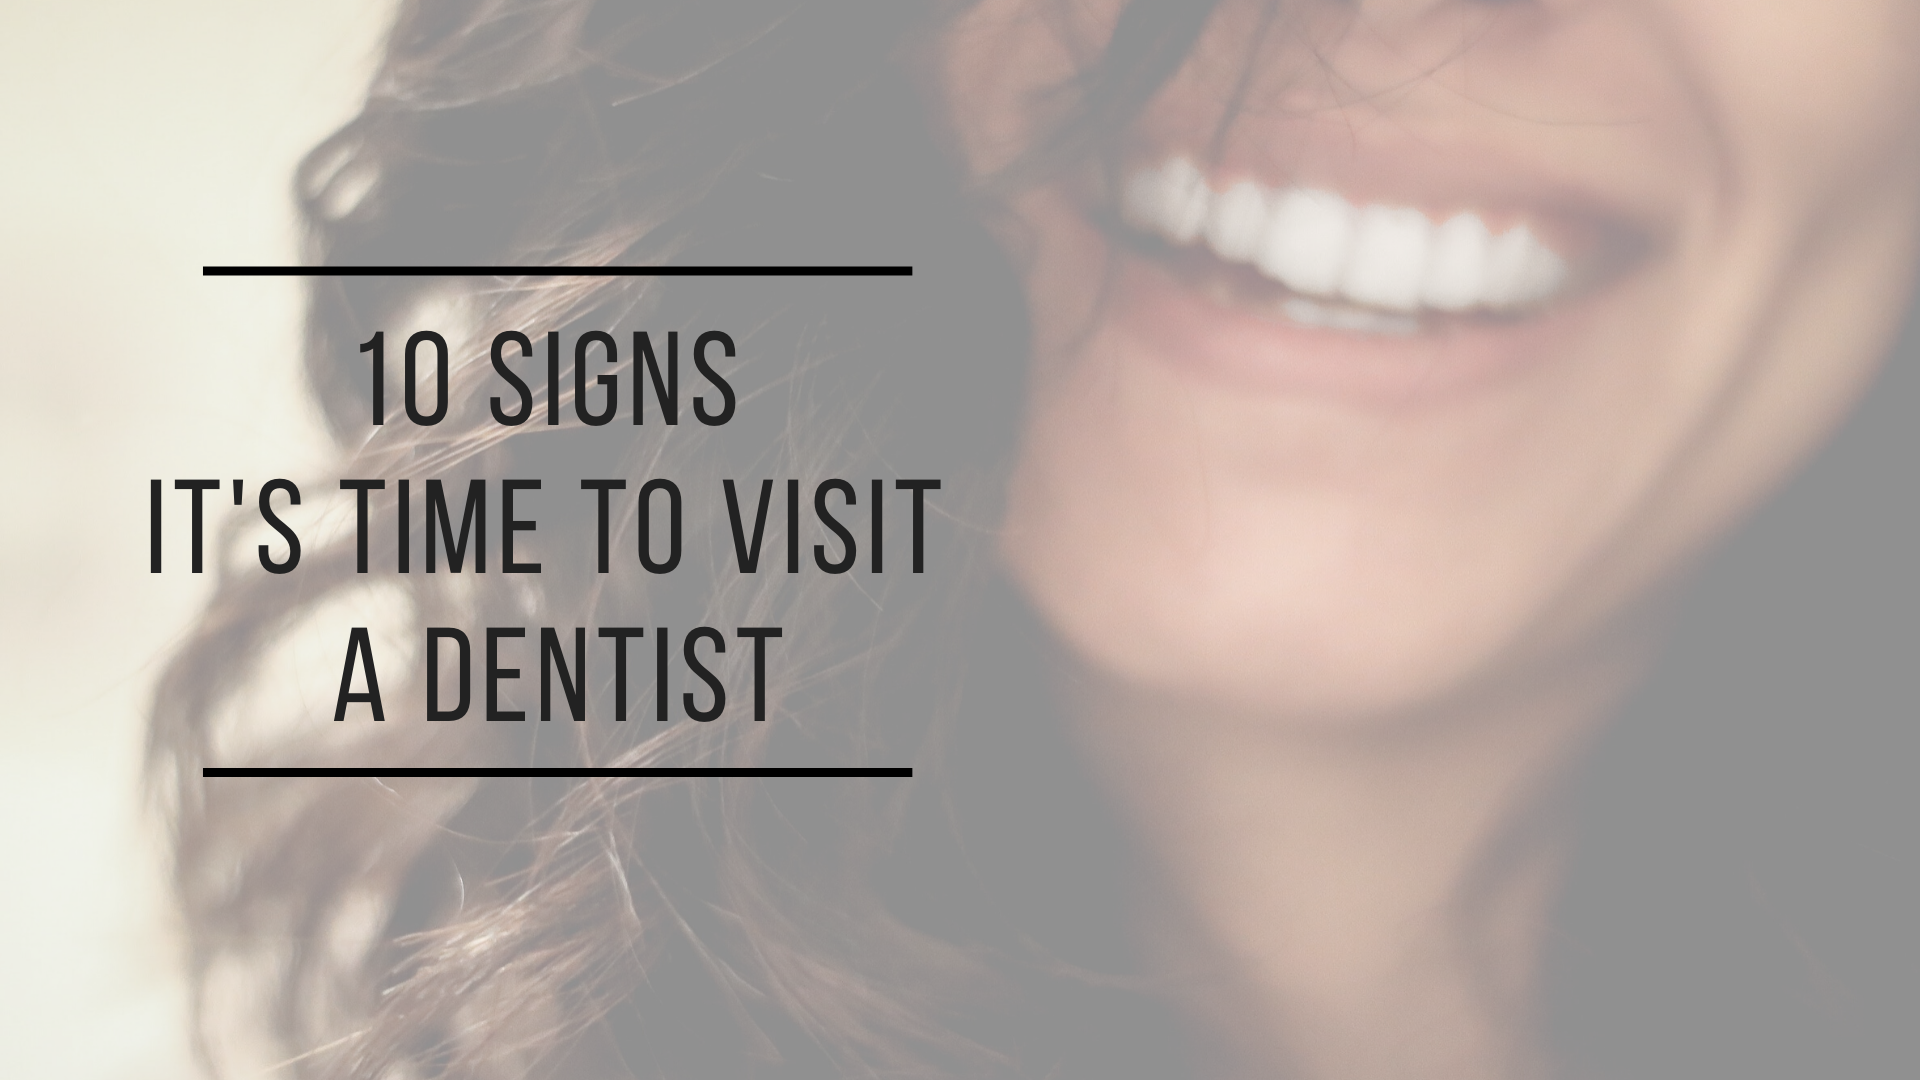 Sylacauga Dentist | 10 Signs It's Time To Visit A Dentist